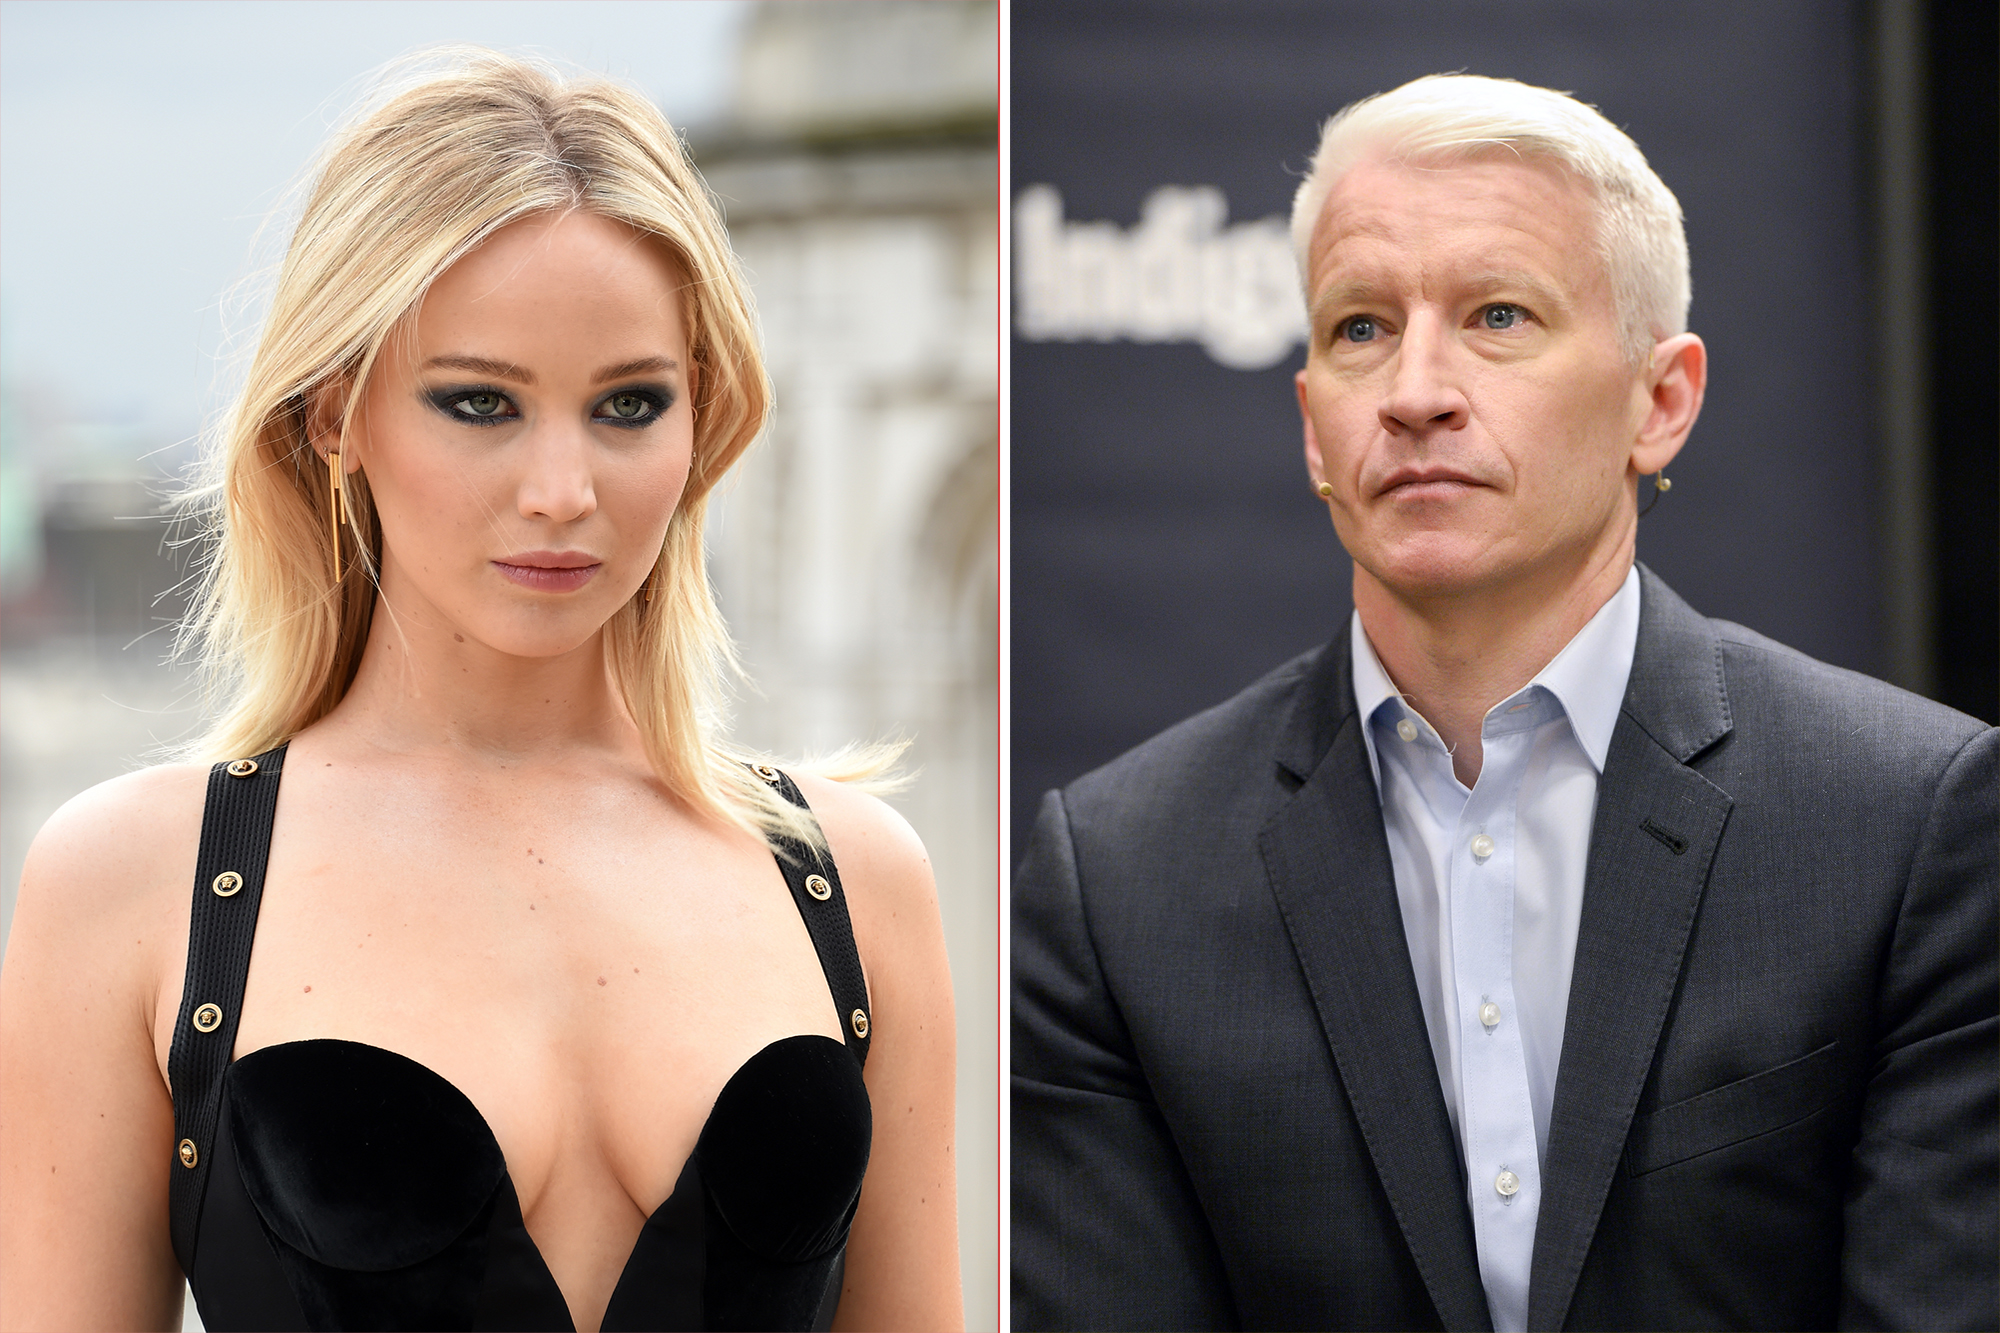 Jennifer Lawrence says she confronted Anderson Cooper over Oscars fall